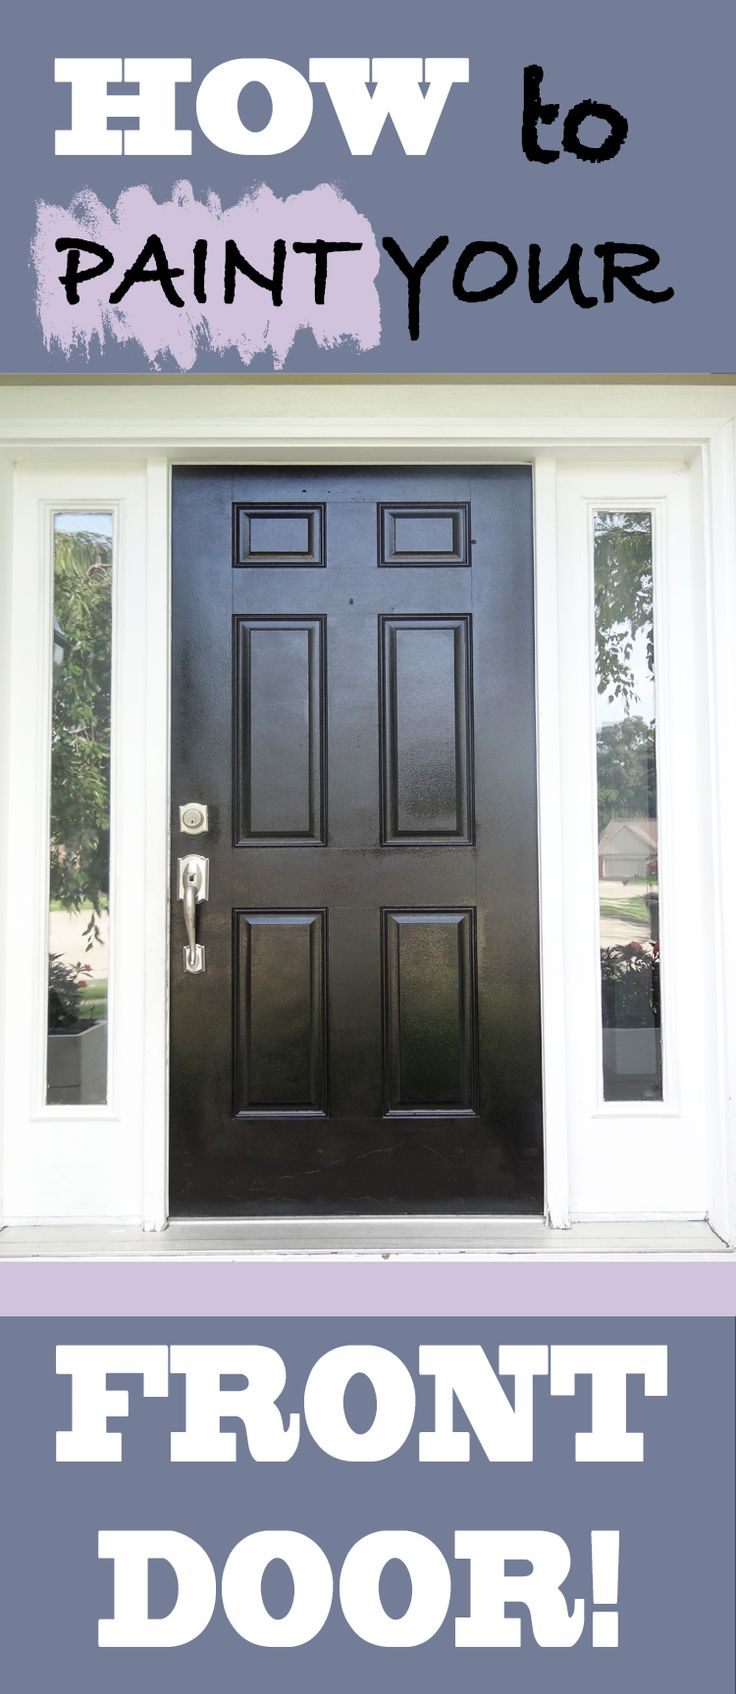 How To Paint A Front Door best 25+ painting doors ideas on pinterest | painting front doors